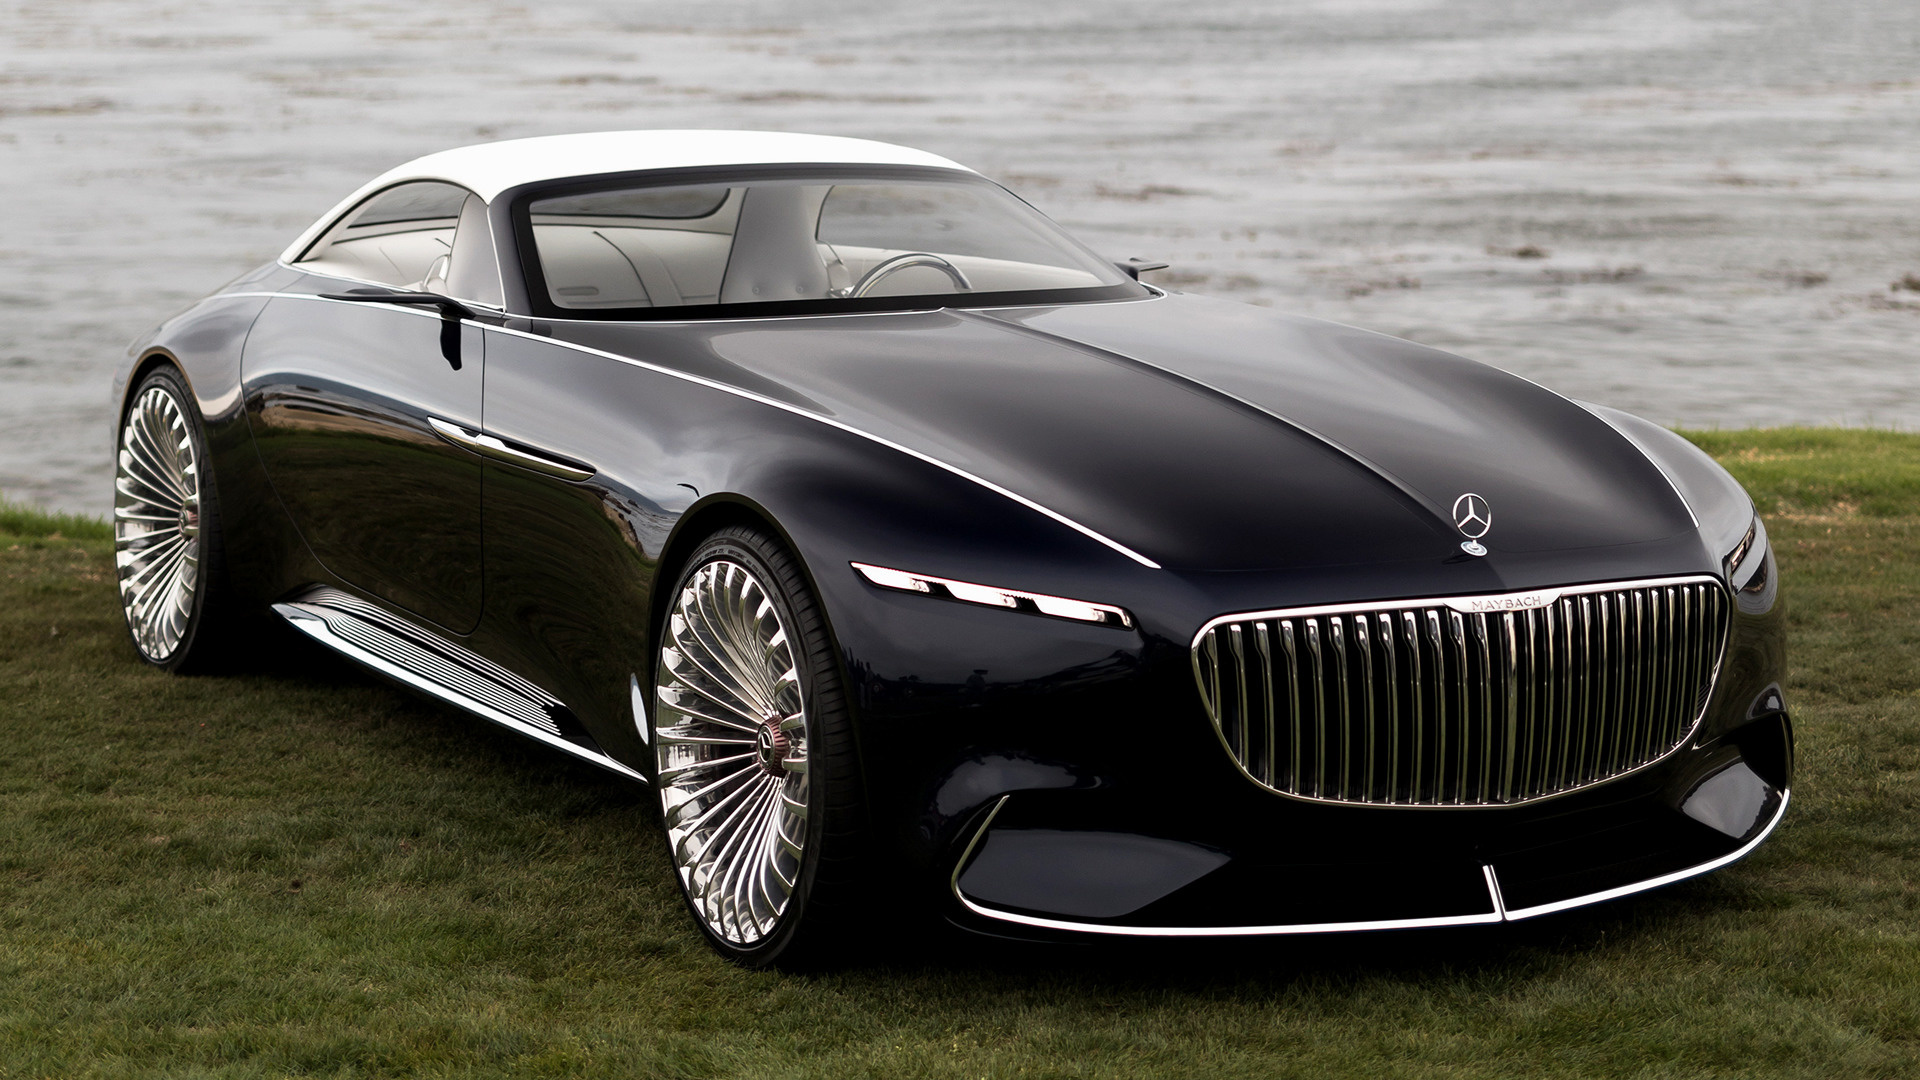 2017 Vision Mercedes-Maybach 6 Cabriolet - Wallpapers and ...